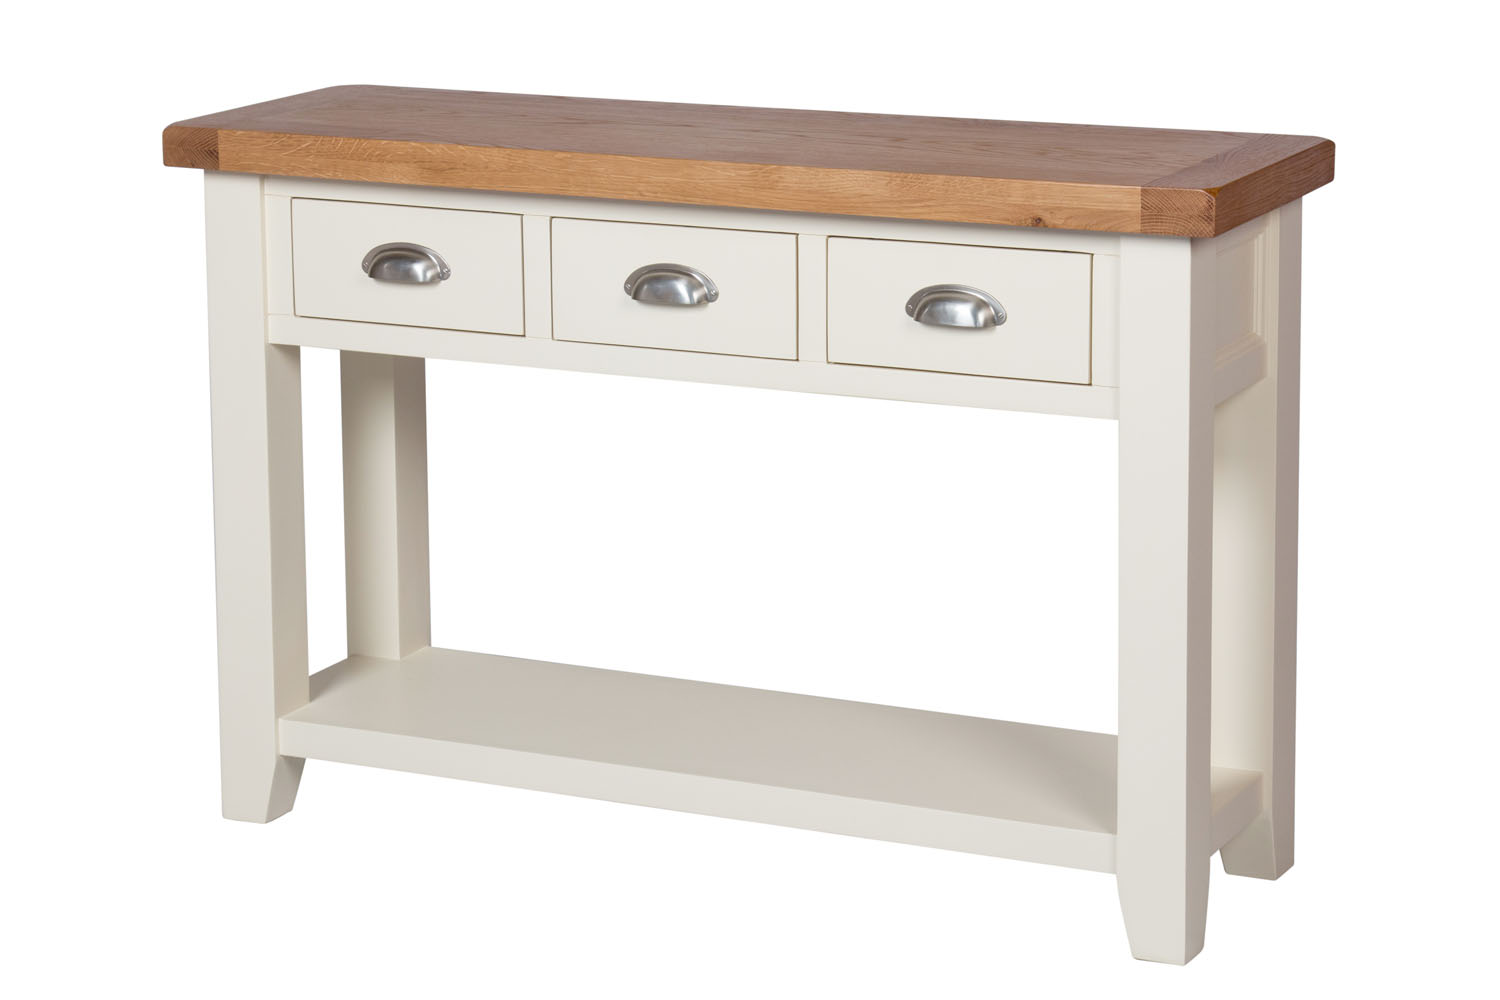 Oak console table uk choice image coffee table design ideas oak console tables geotapseo choice image geotapseo Gallery